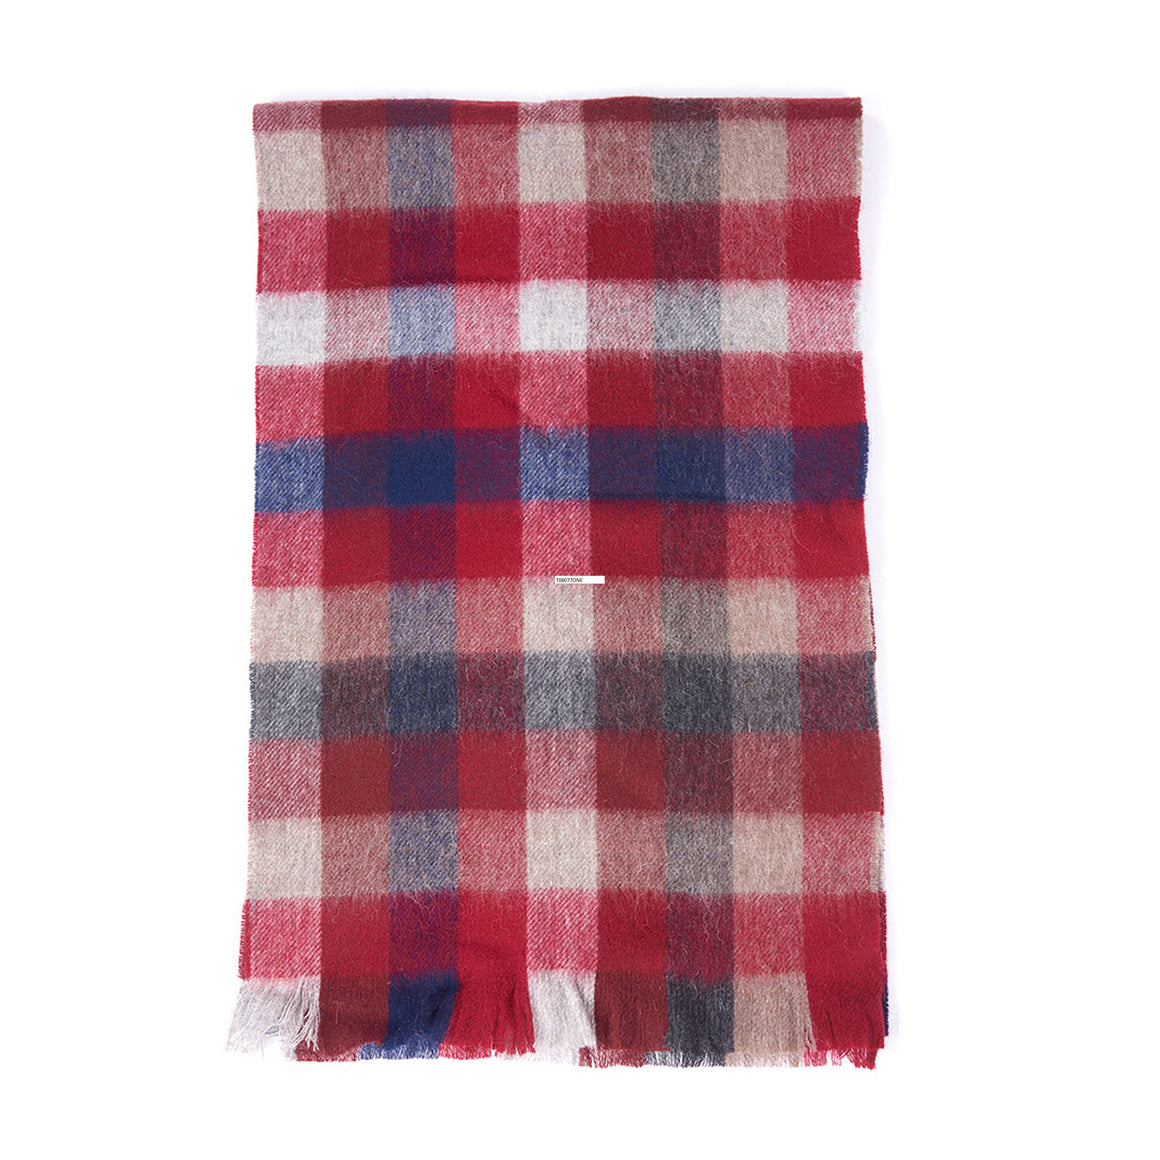 Nine Square Scarf for Men in Bright Red